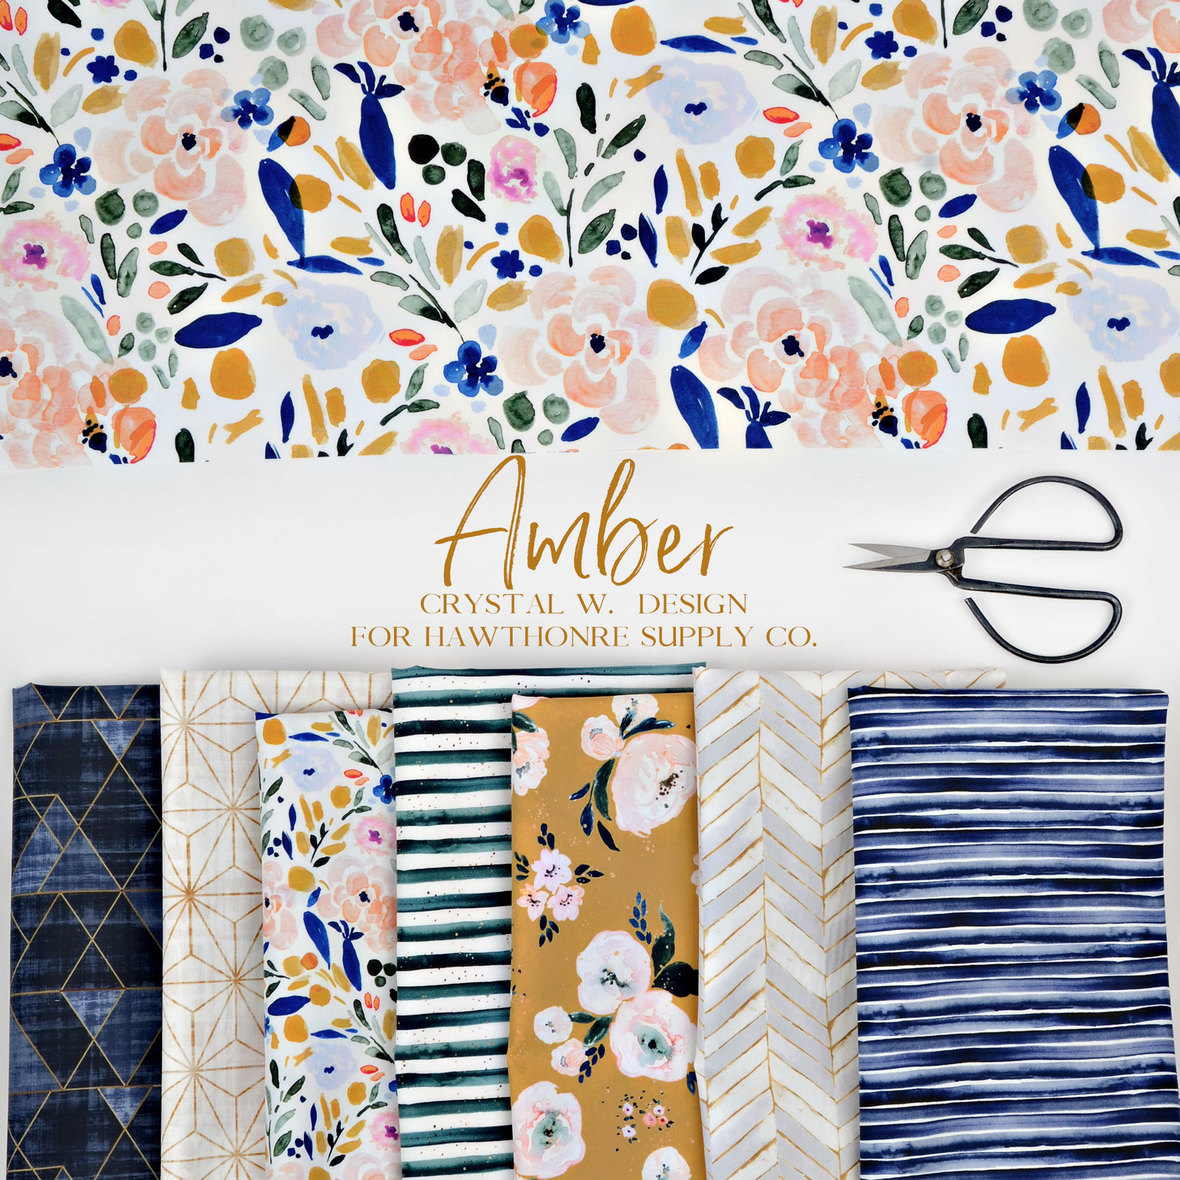 Amber-Fabric-Crystal-Walen-Design-at-Hawthorne-Supply-Co.